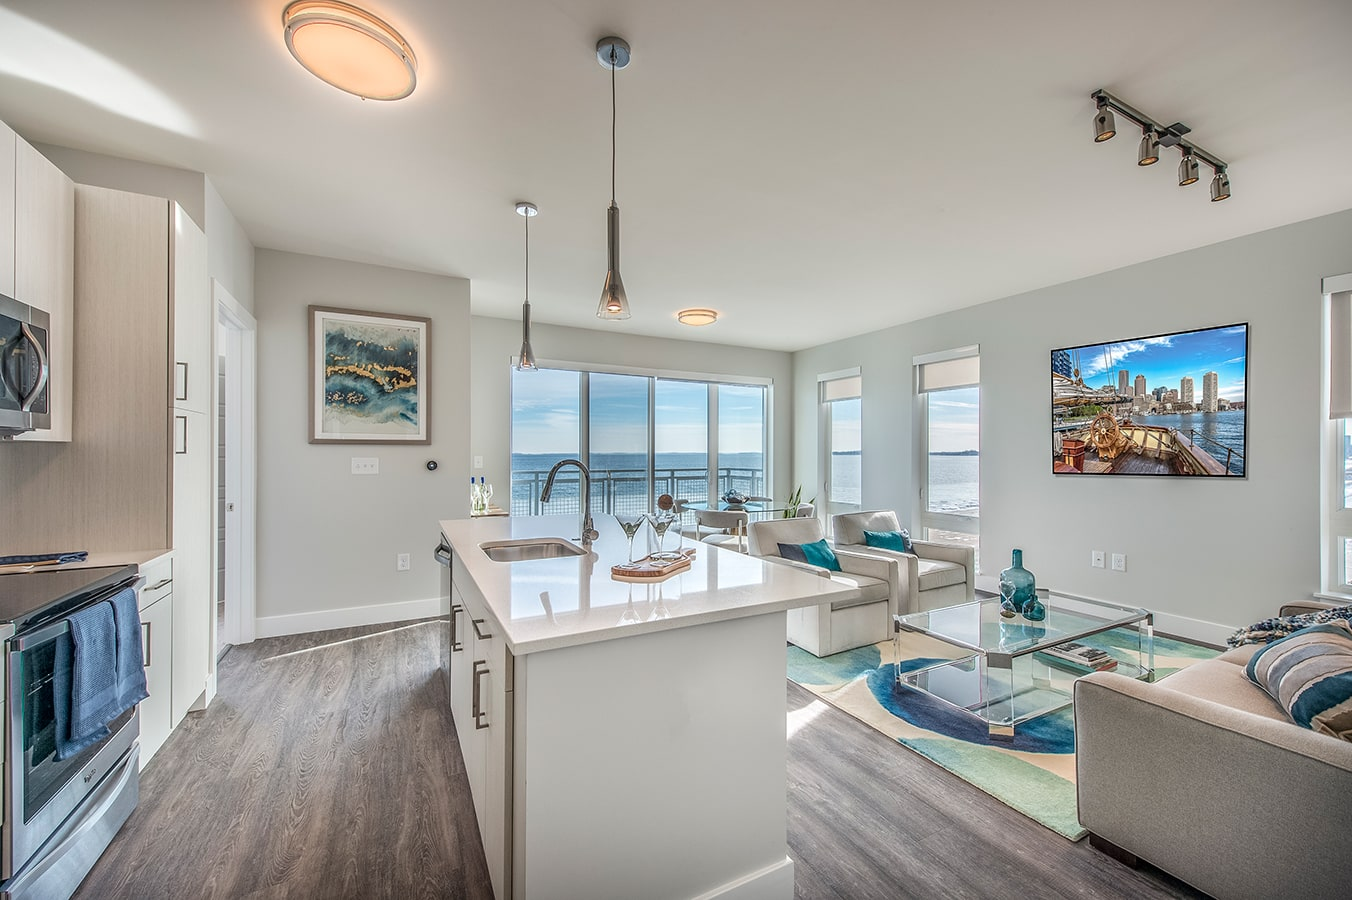 For Rent In Revere Ma Were Here To Answer Any Questions You May Have Contact Us Today To Start The Process Of Selecting A New Home At Beach House